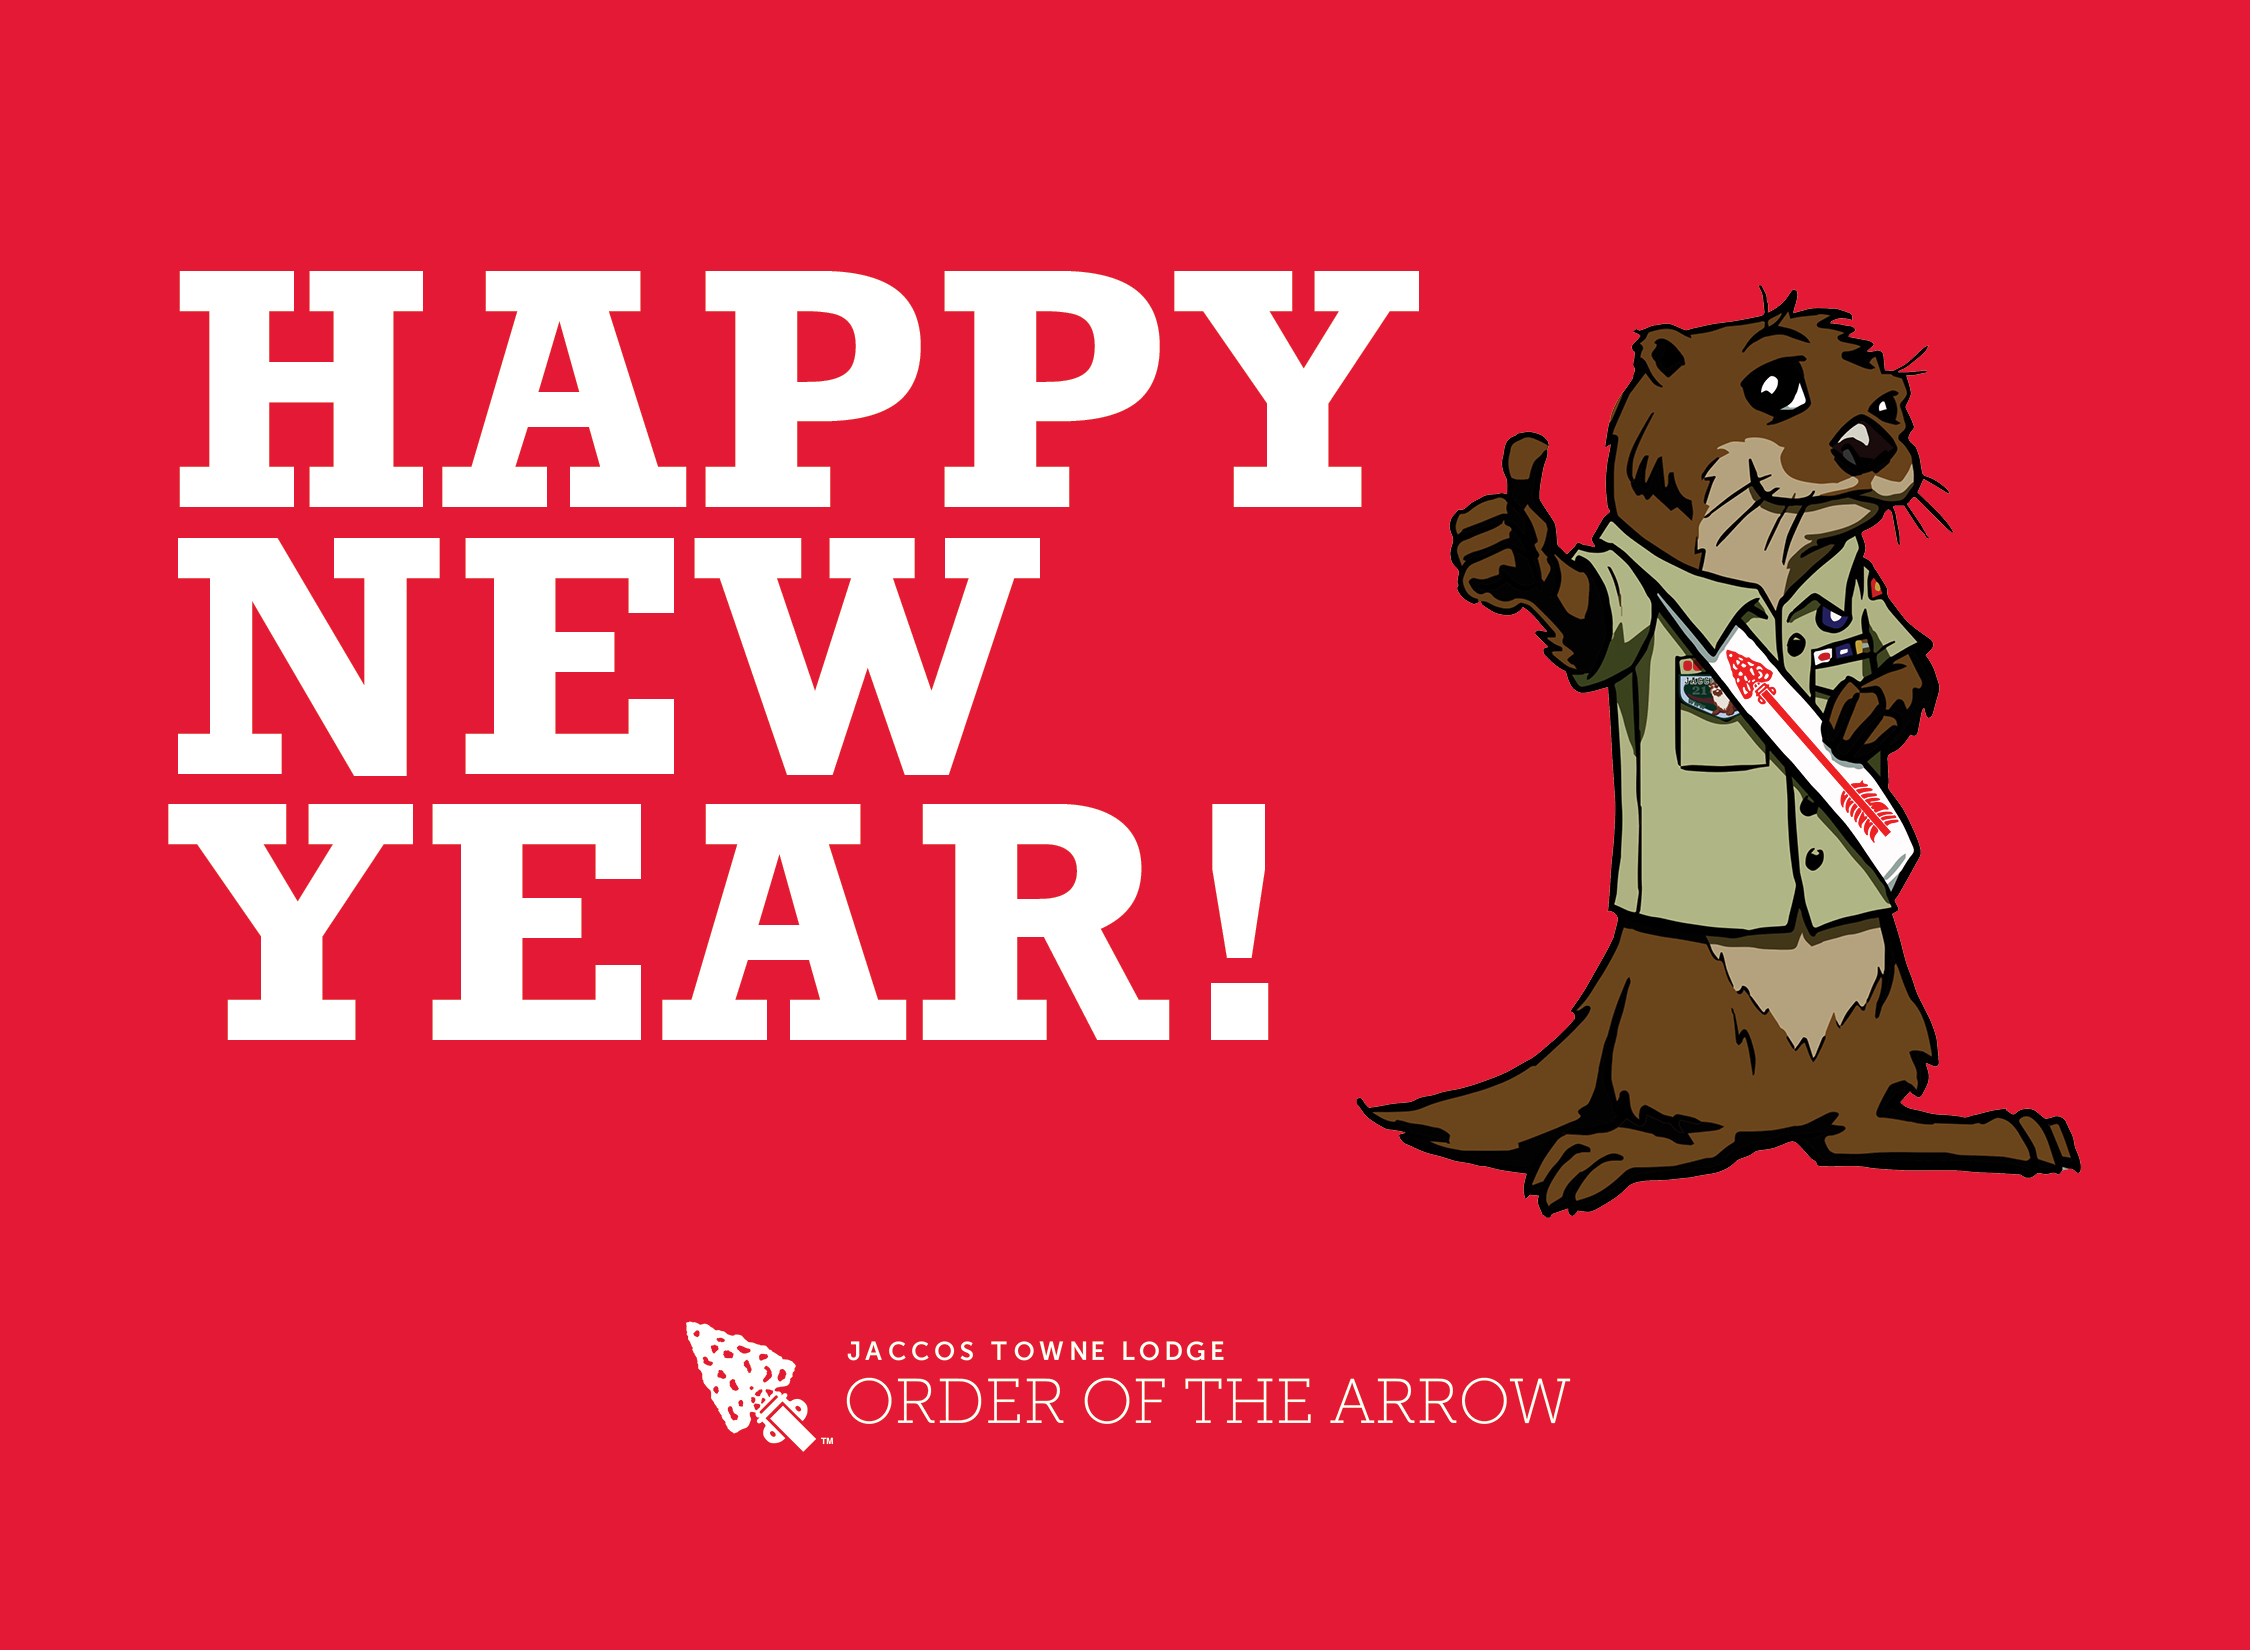 Happy New Year from Jaccos Towne Lodge